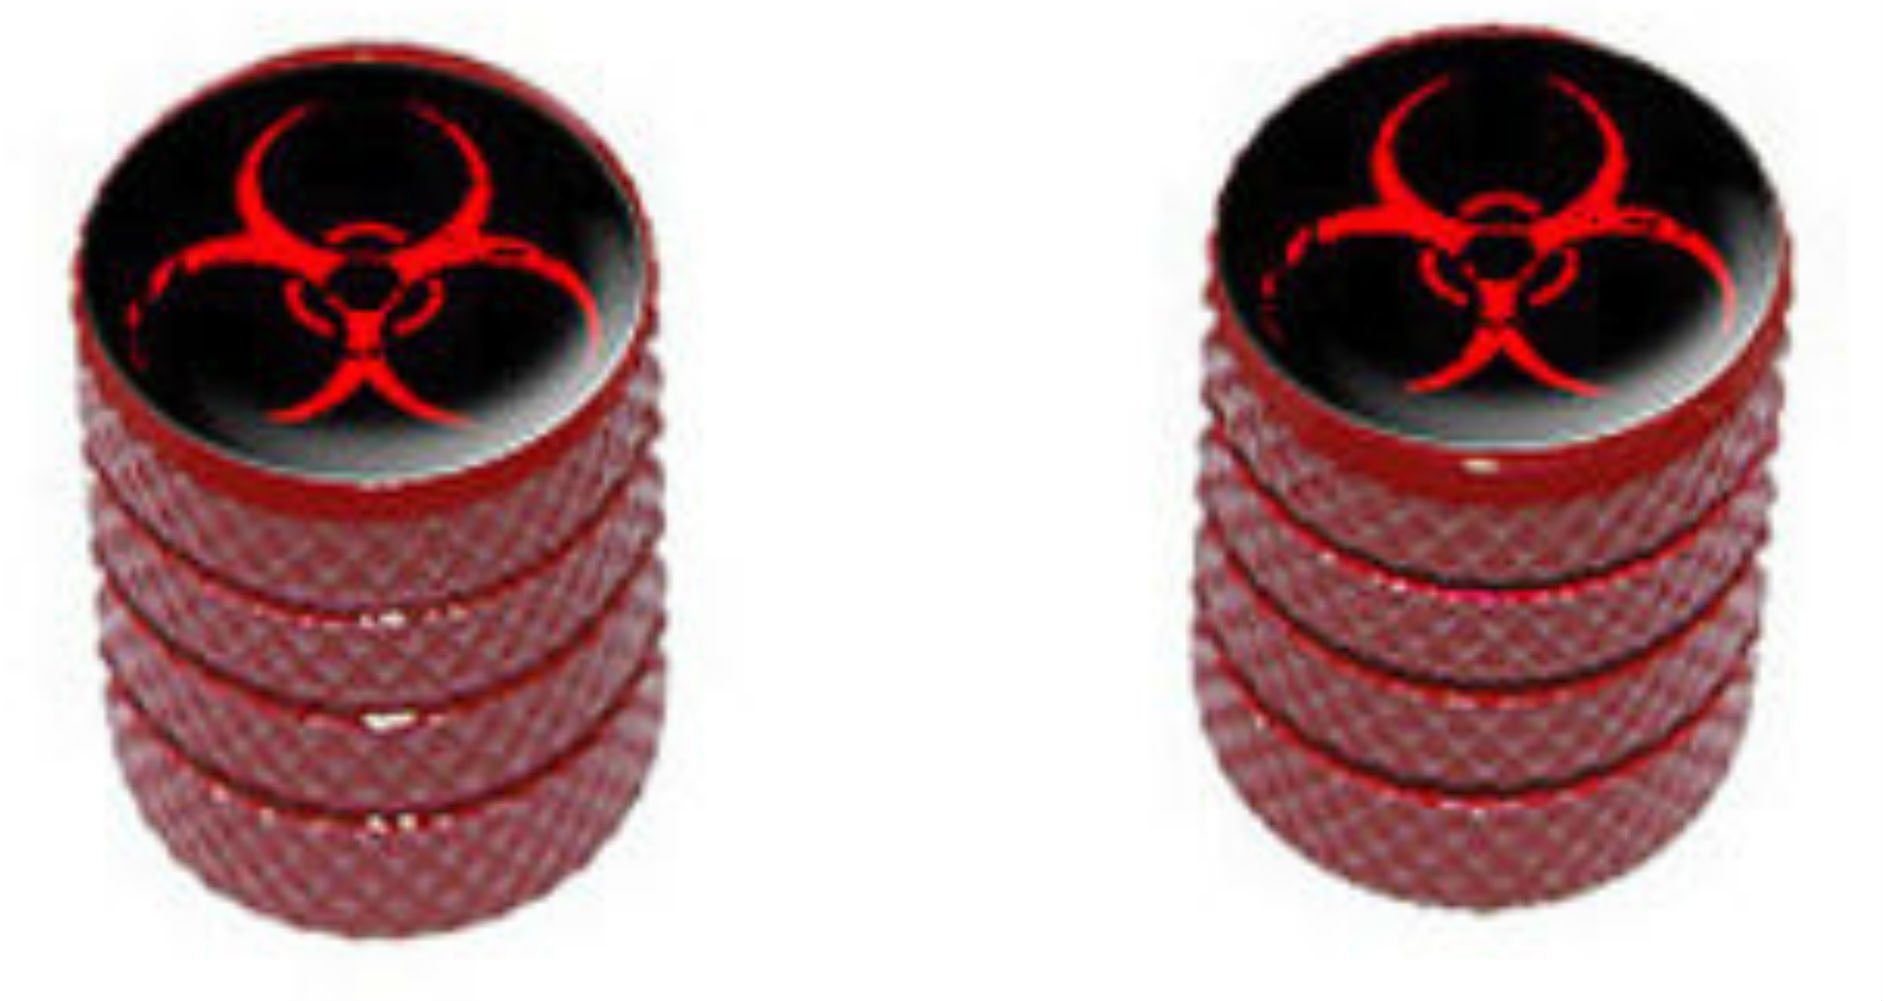 "(2 Count) Cool and Custom ""Diamond Etching Biohazard Symbol Top with Easy Grip Texture'' Tire Wheel Rim Air Valve Stem Dust Cap Seal Made of Genuine Anodized Aluminum Metal {Red and Black Colors}"